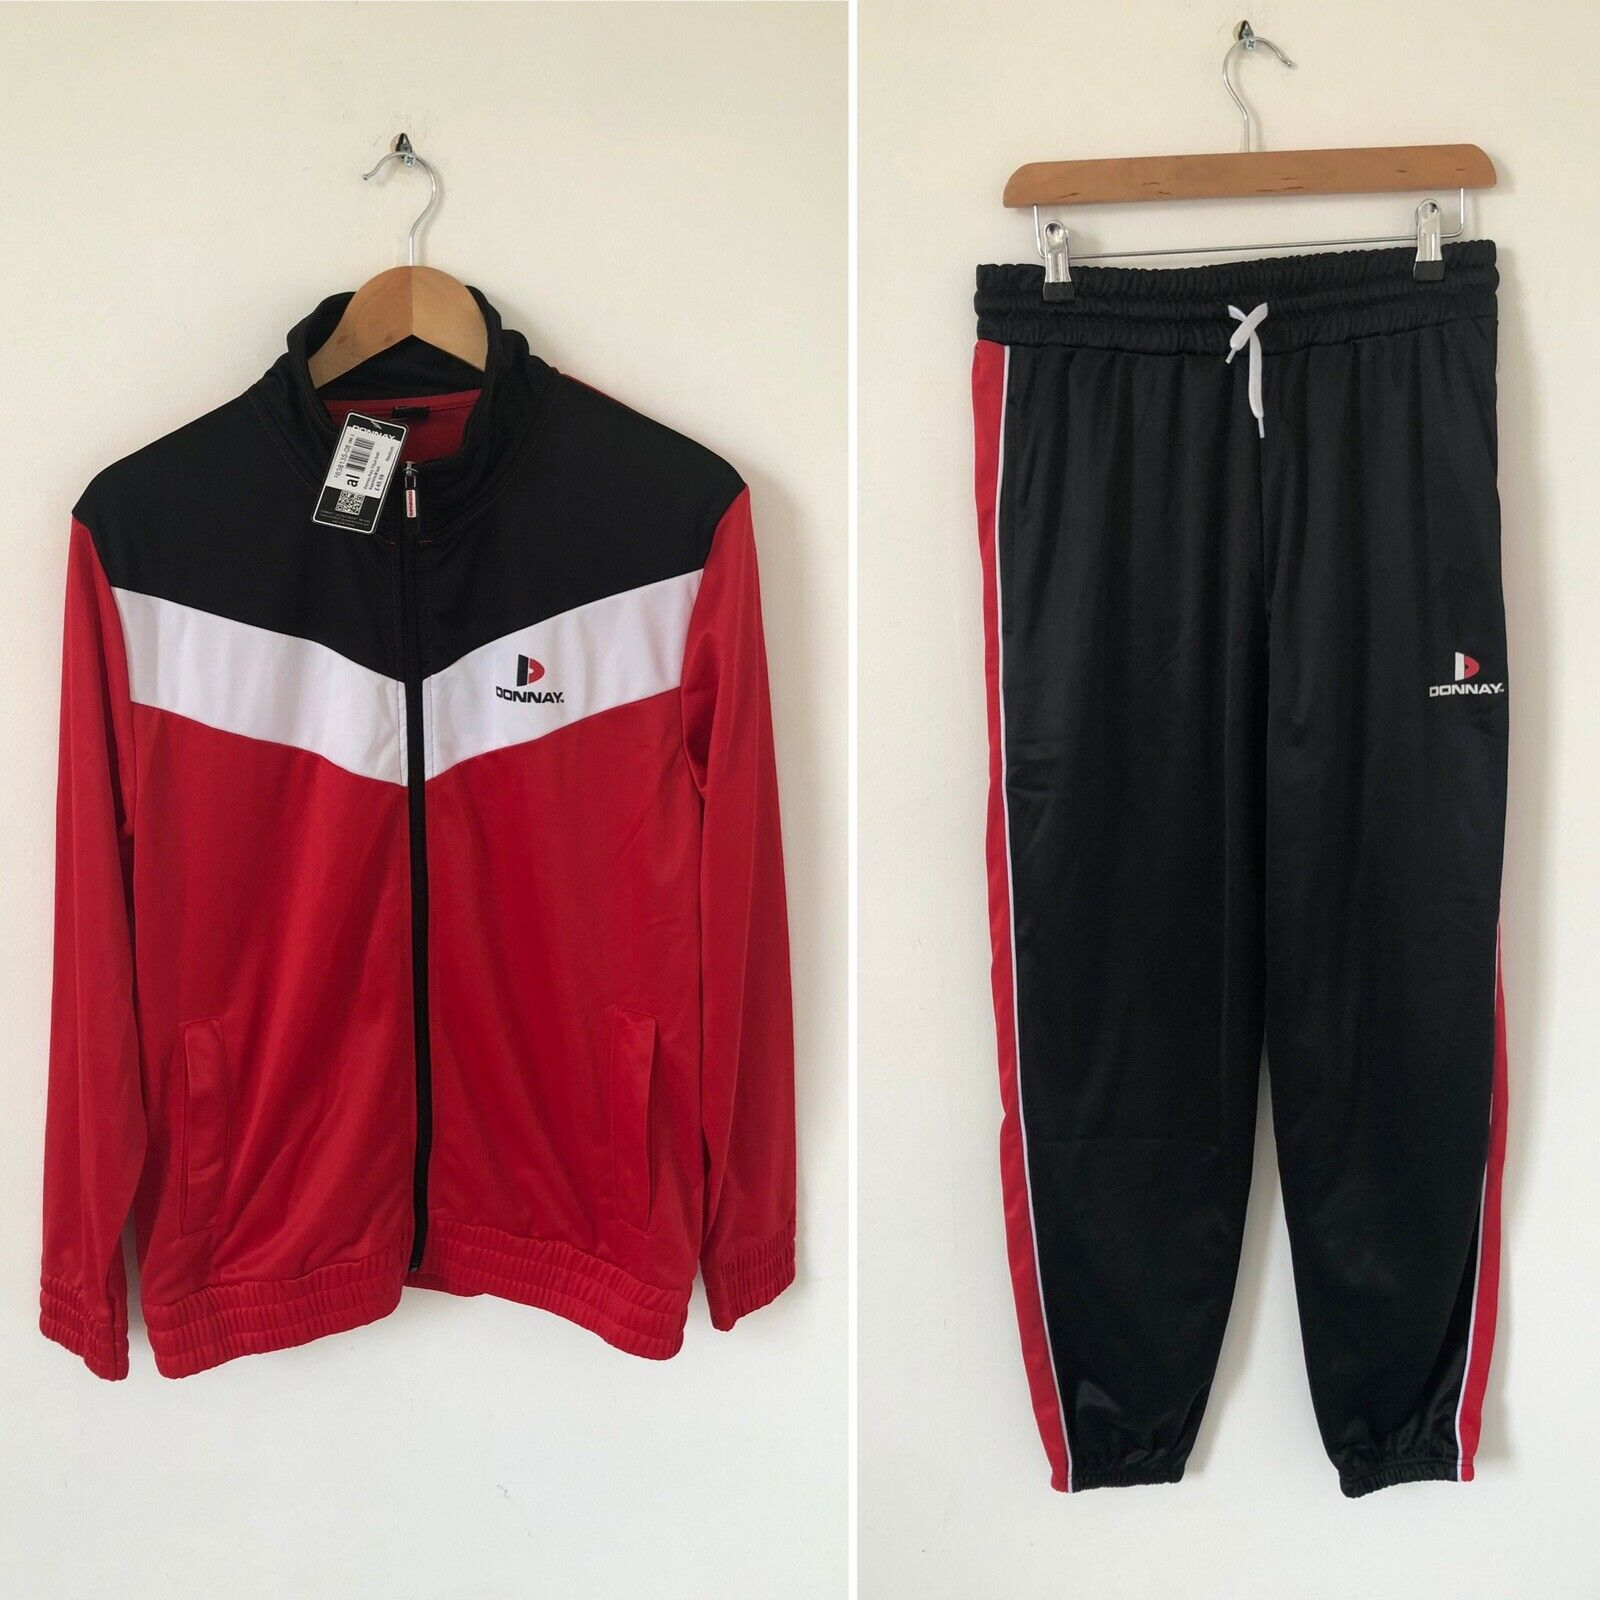 NEW Donnay Red Black Full Tracksuit Full Zip Jacket & Trousers Size Medium